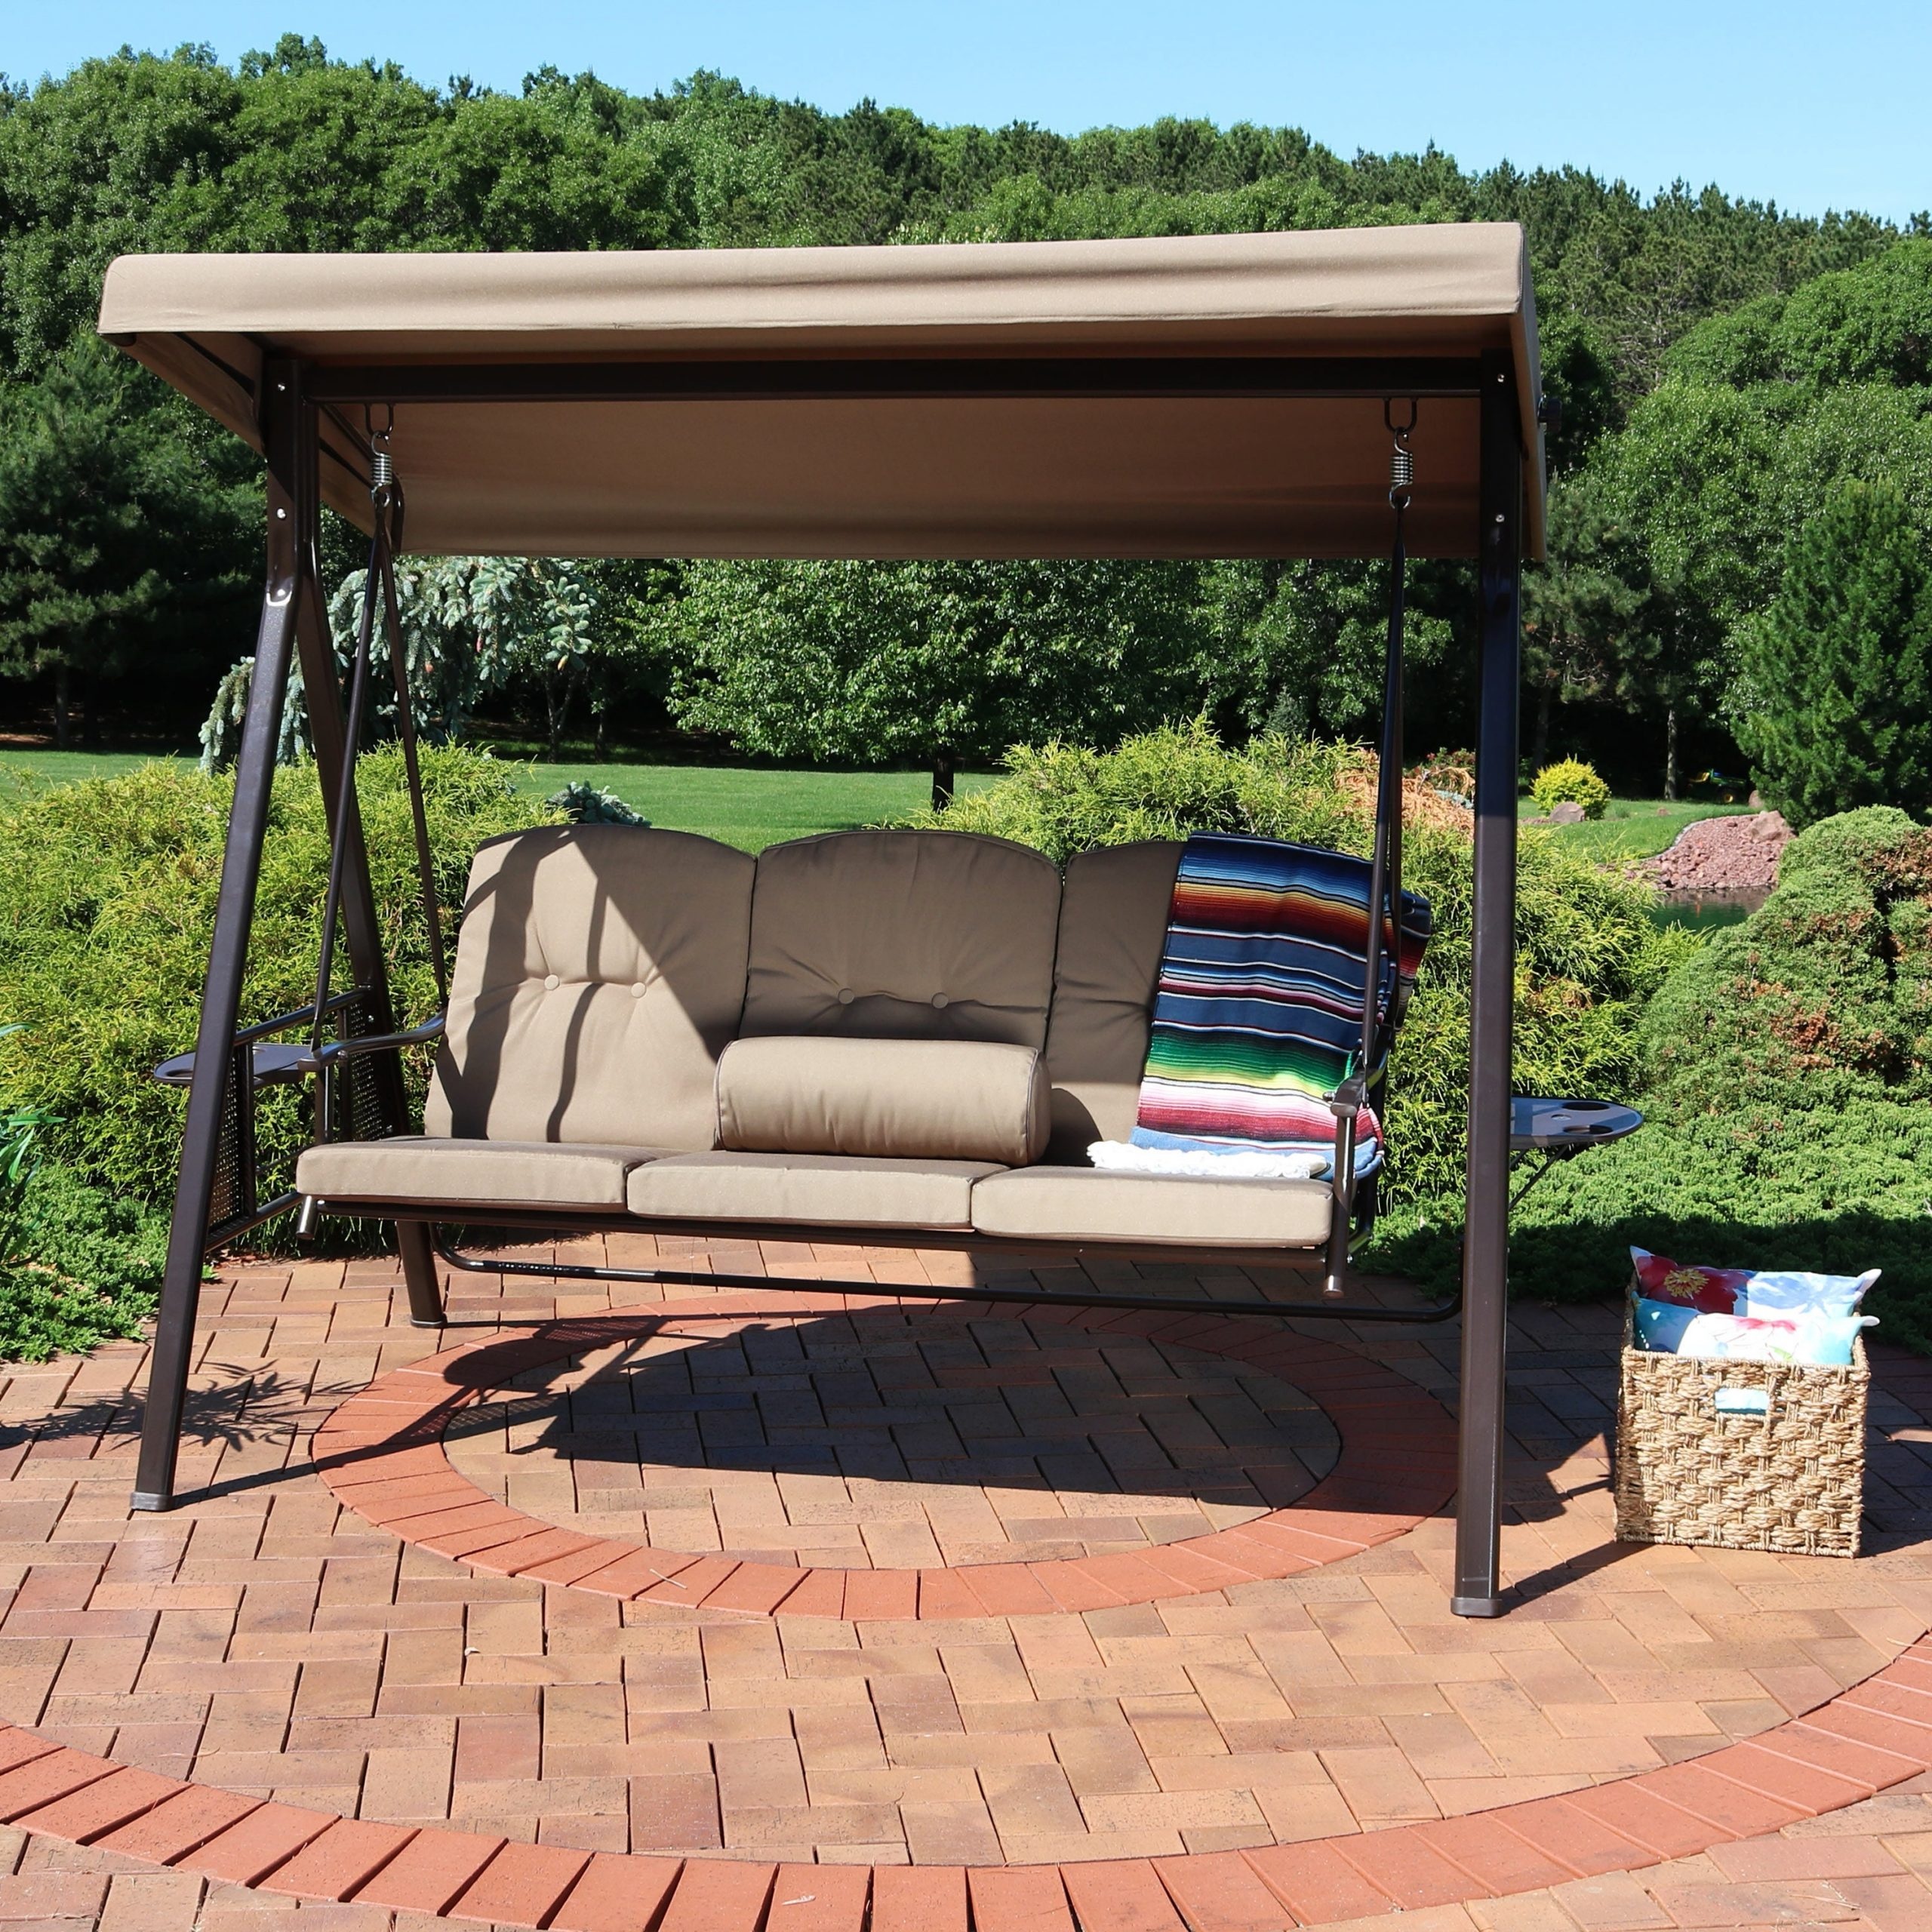 Most Current 3 Person Red With Brown Powder Coated Frame Steel Outdoor Swings With Sunnydaze 3 Person Adjustable Tilt Canopy Patio Swing With Pillows And Cushions (Gallery 10 of 25)